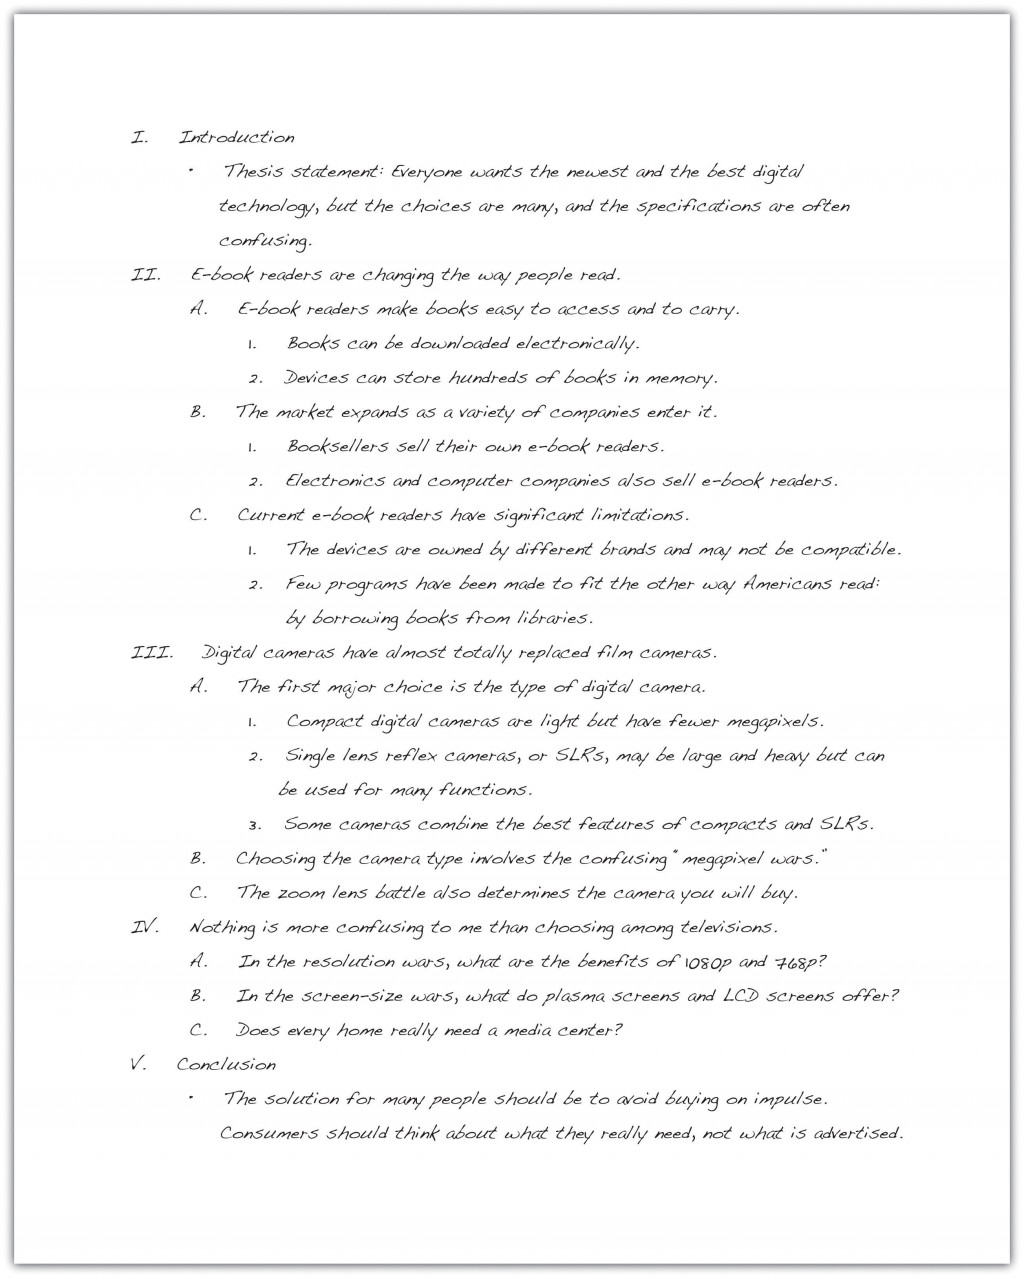 003 Research Paper Examples Of Sentence Outlines For Striking Example Outline Full Large